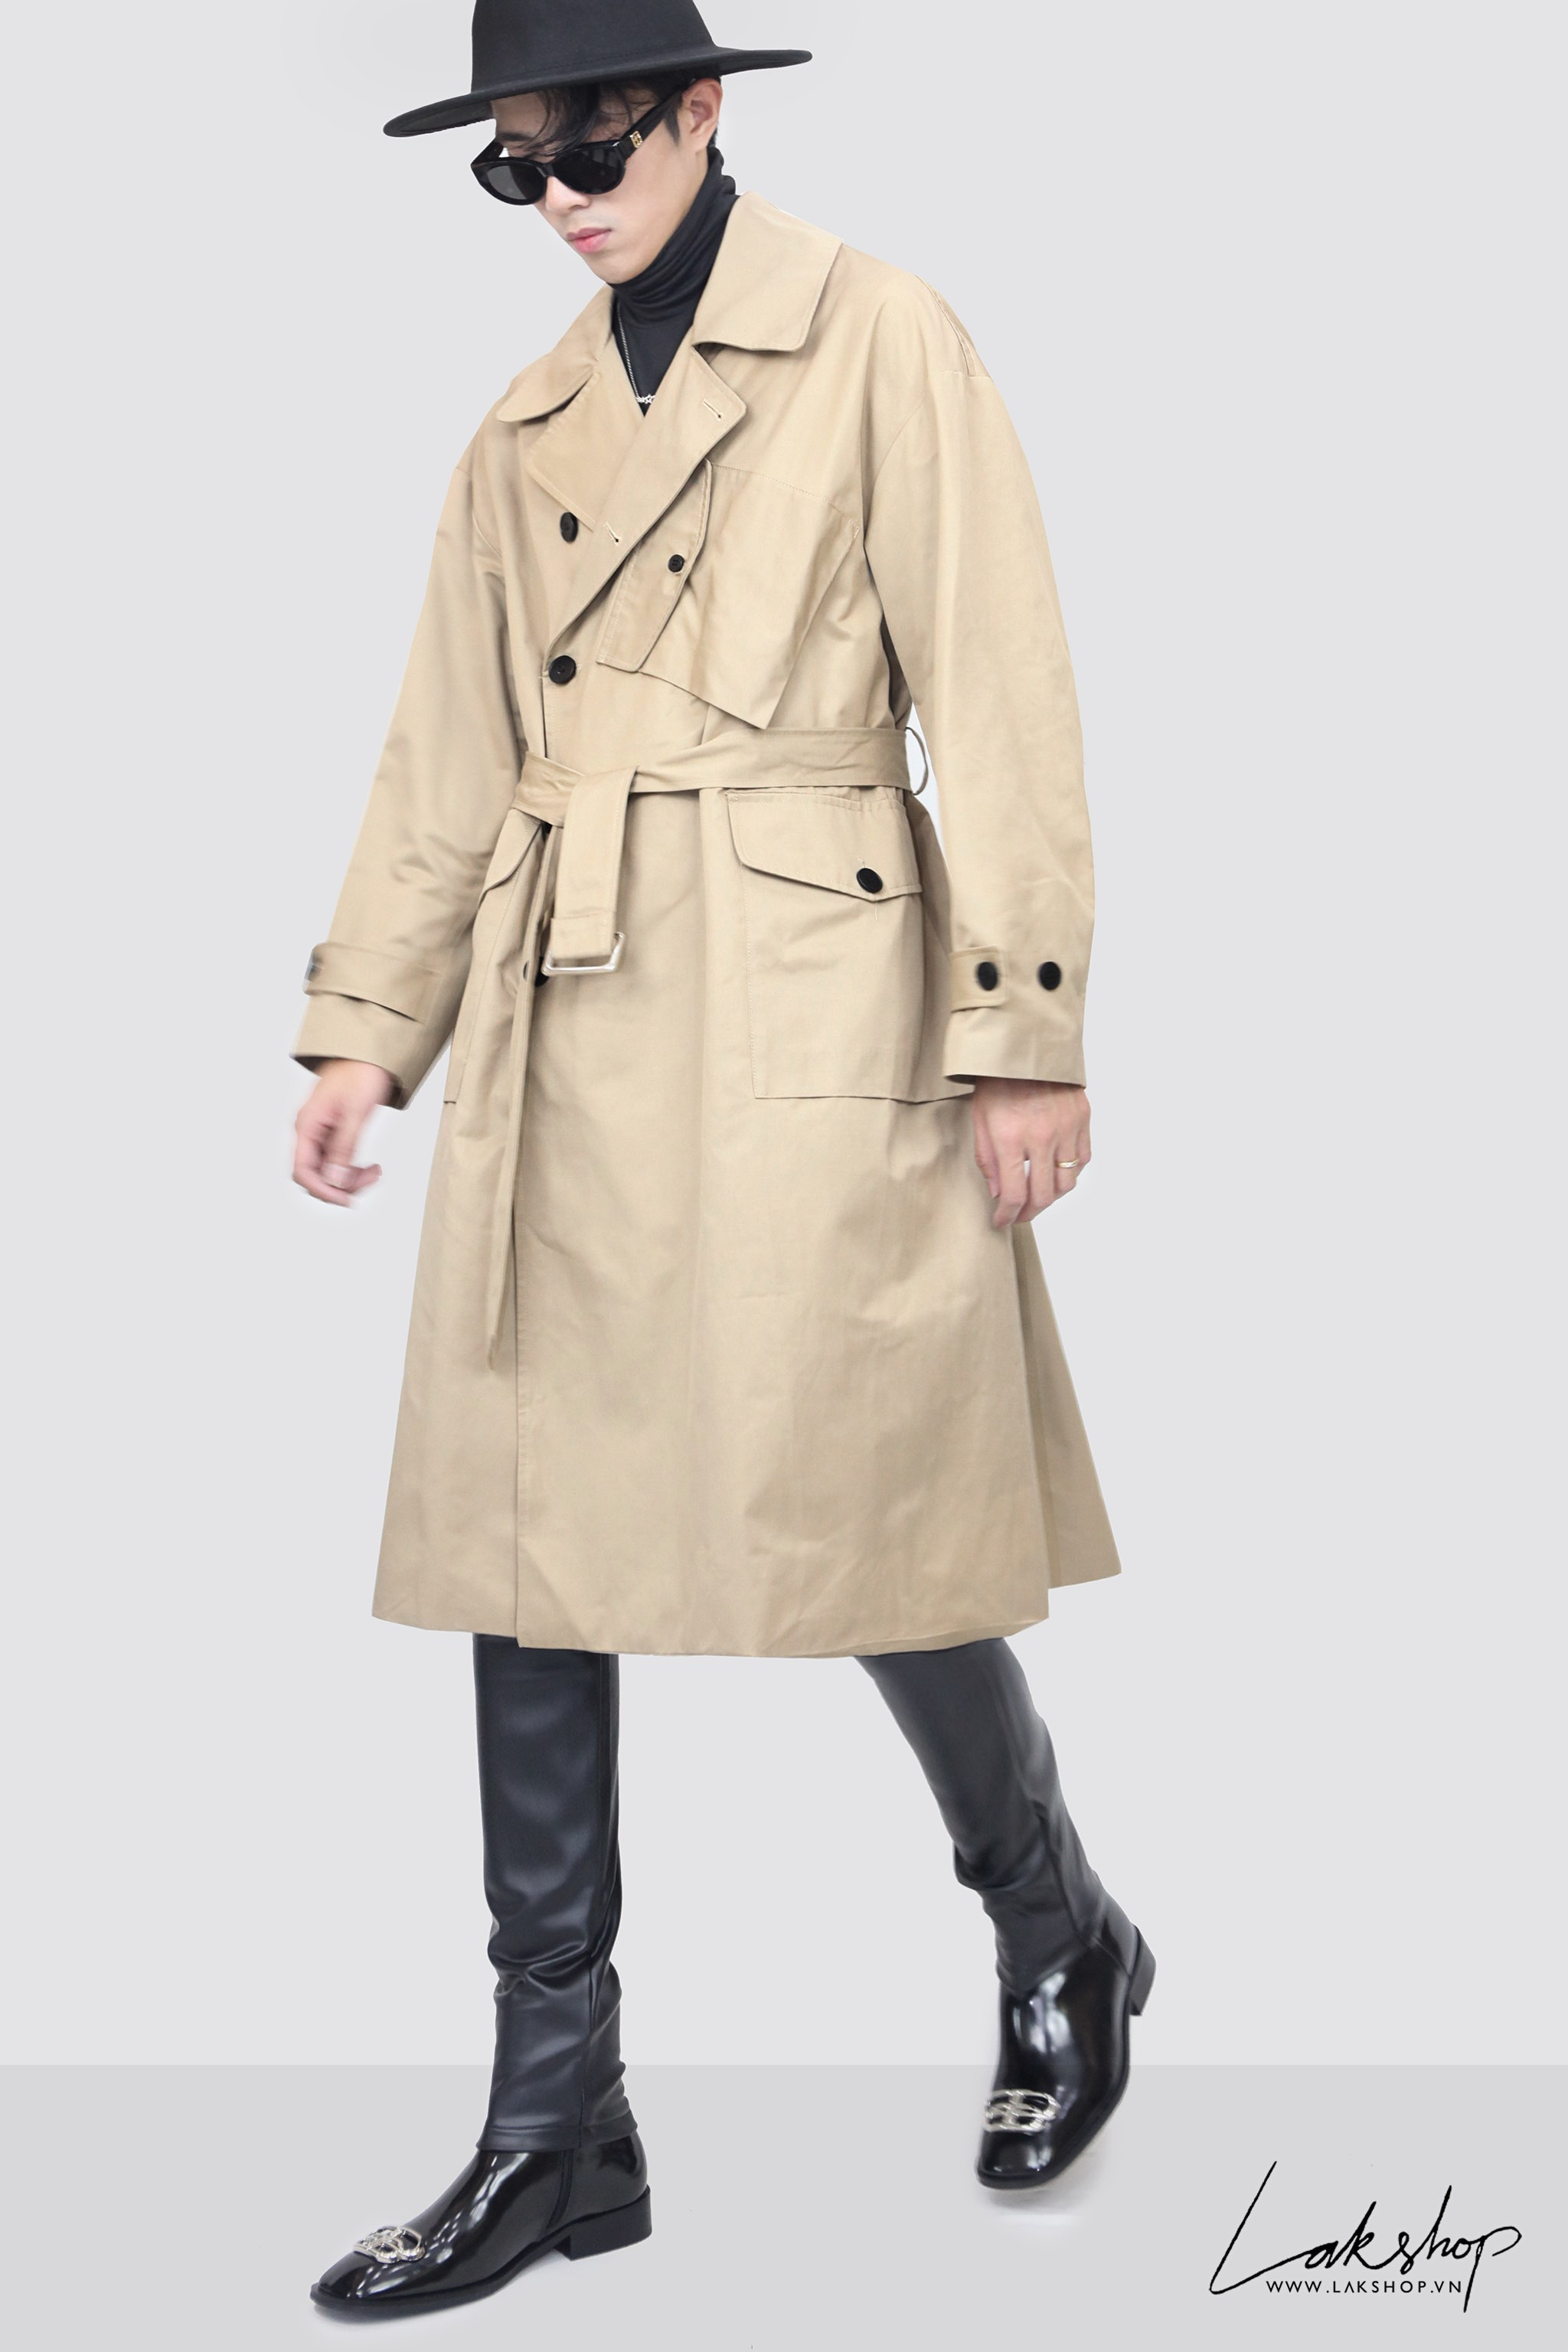 Belted Tan Trench Coat with Bag